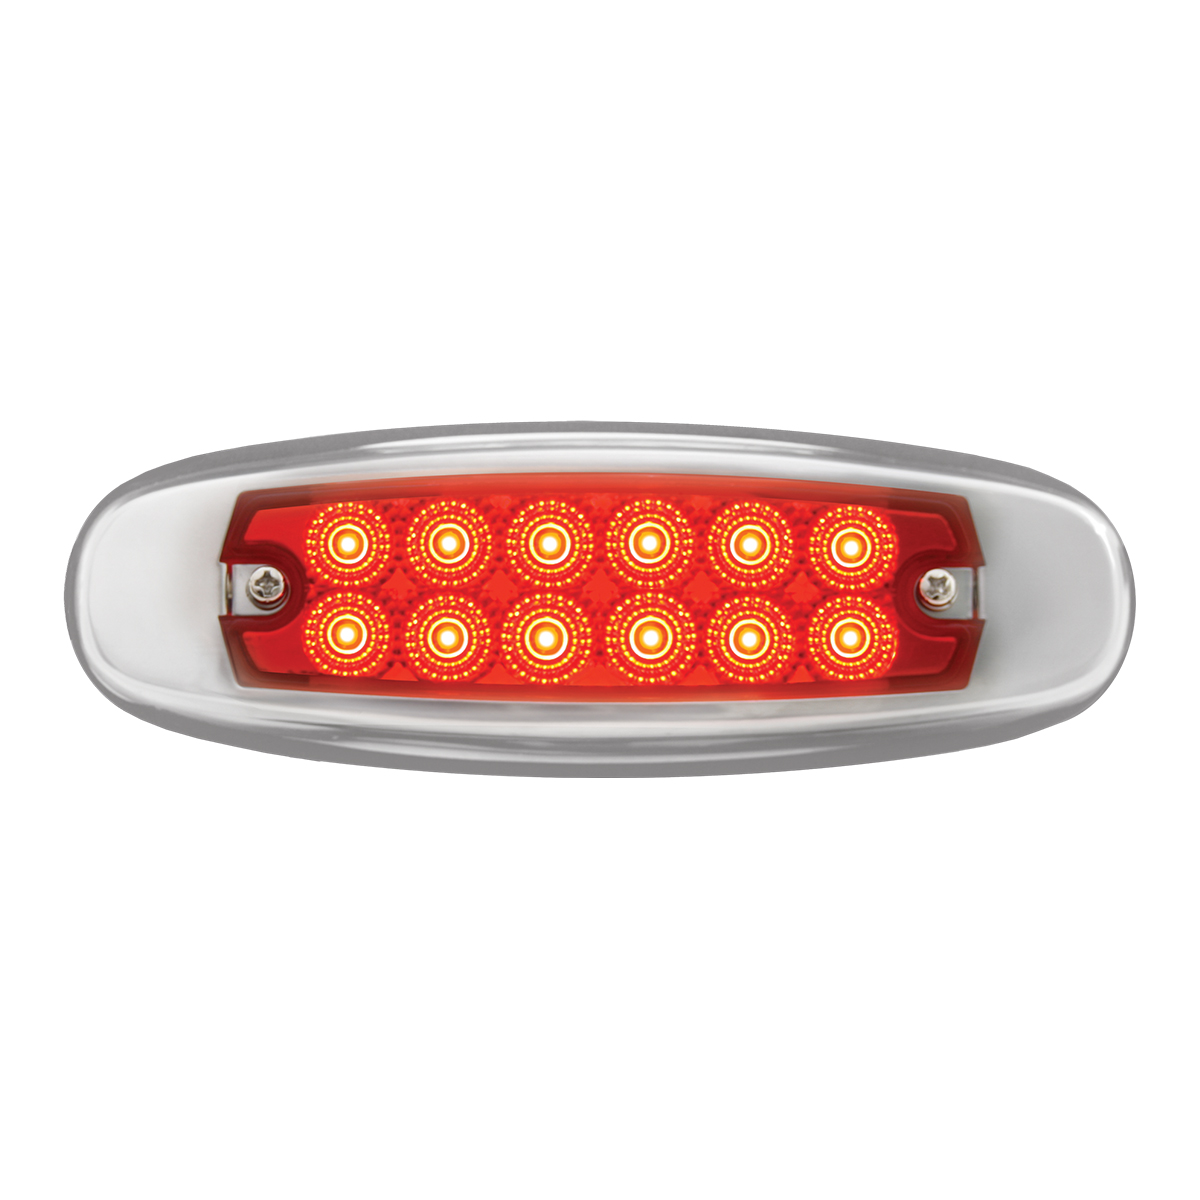 75131 24V Ultra Thin Spyder LED Marker Light w/ Stainless Steel Bezel